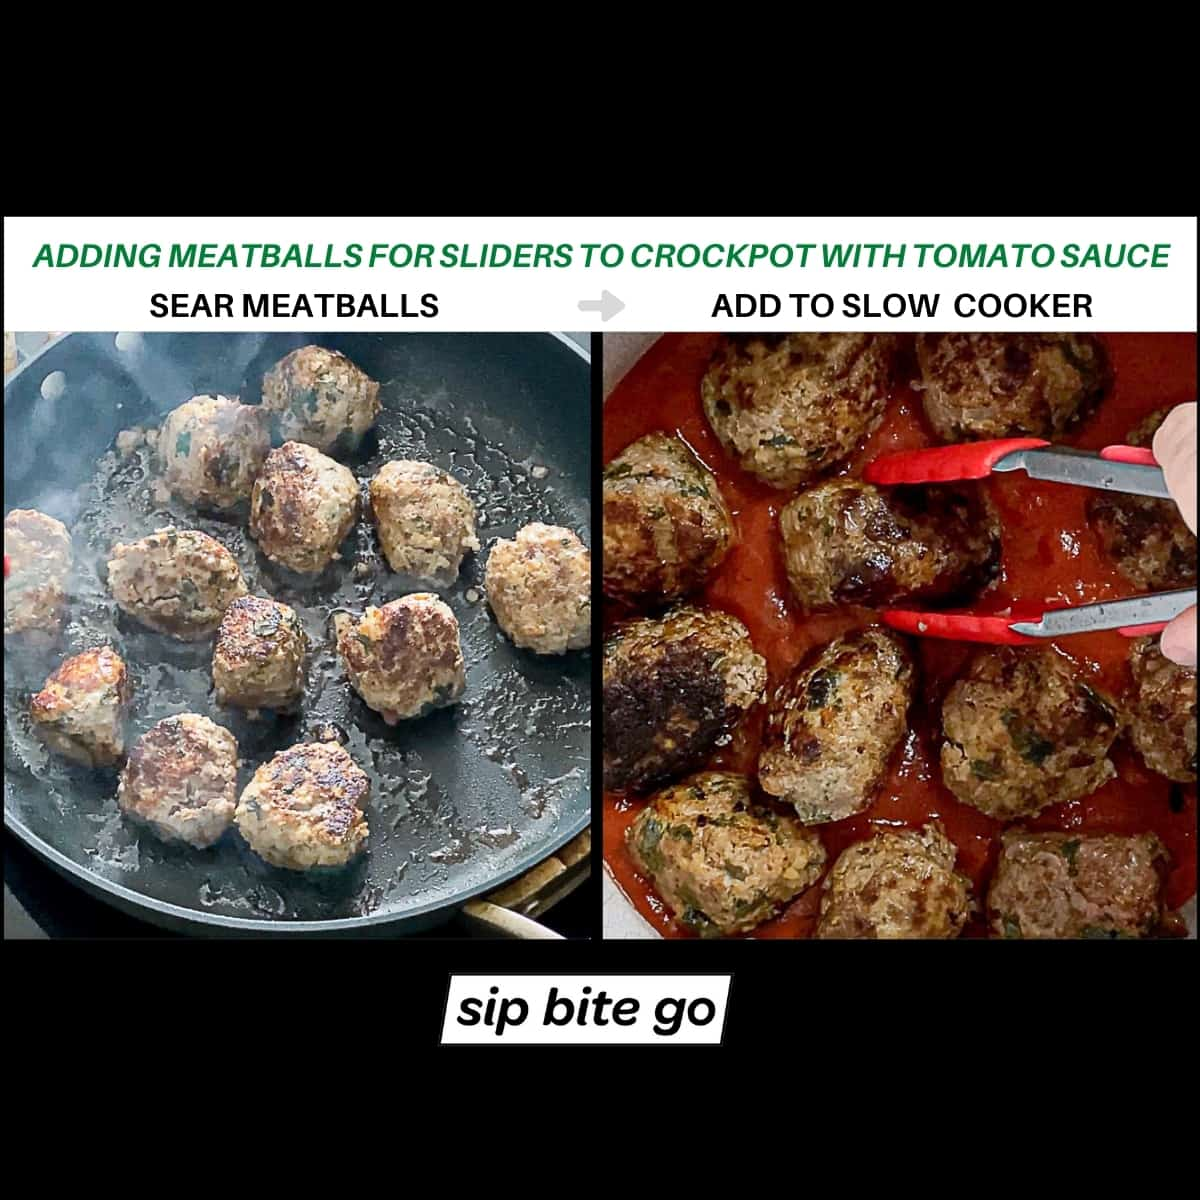 Infographic demonstrating searing meatballs and adding meatballs for sliders to crockpot with tomato sauce.